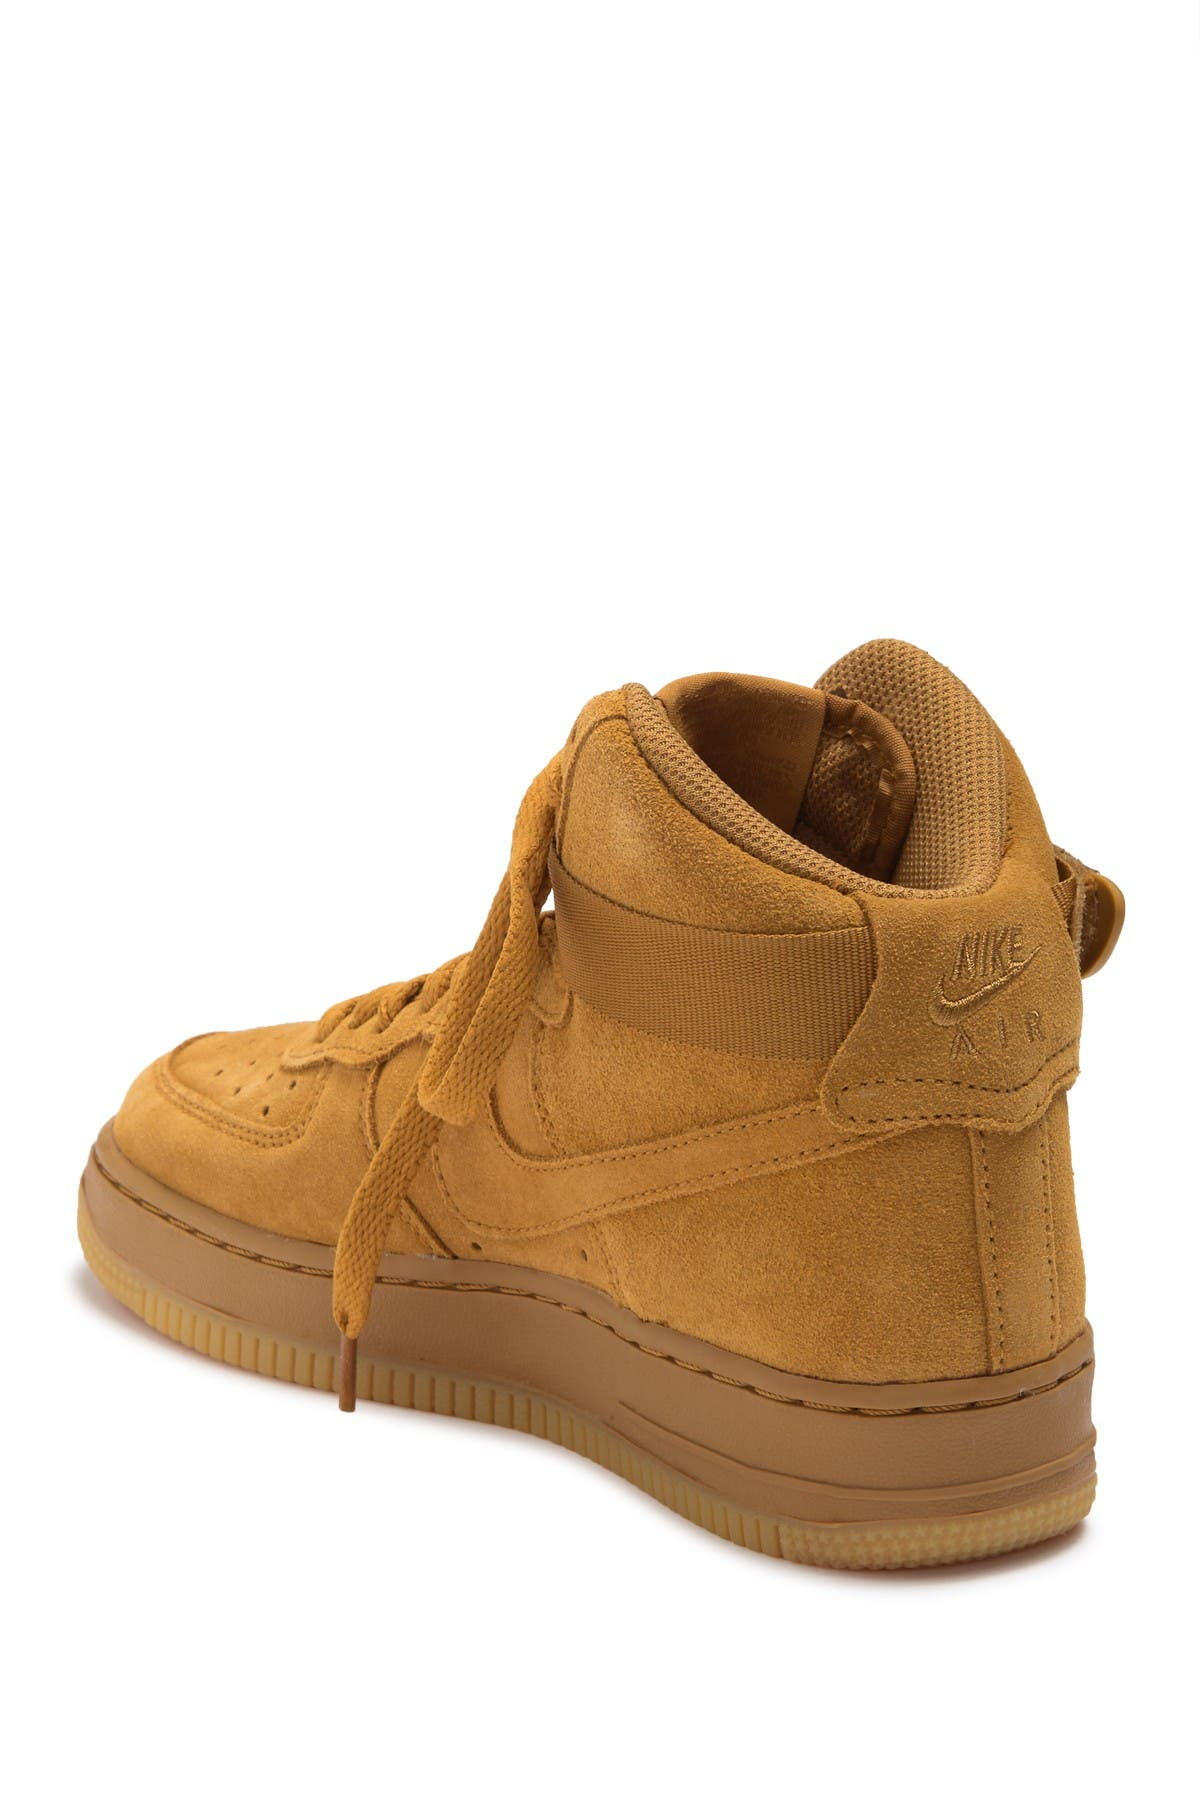 air force 1 high top suede